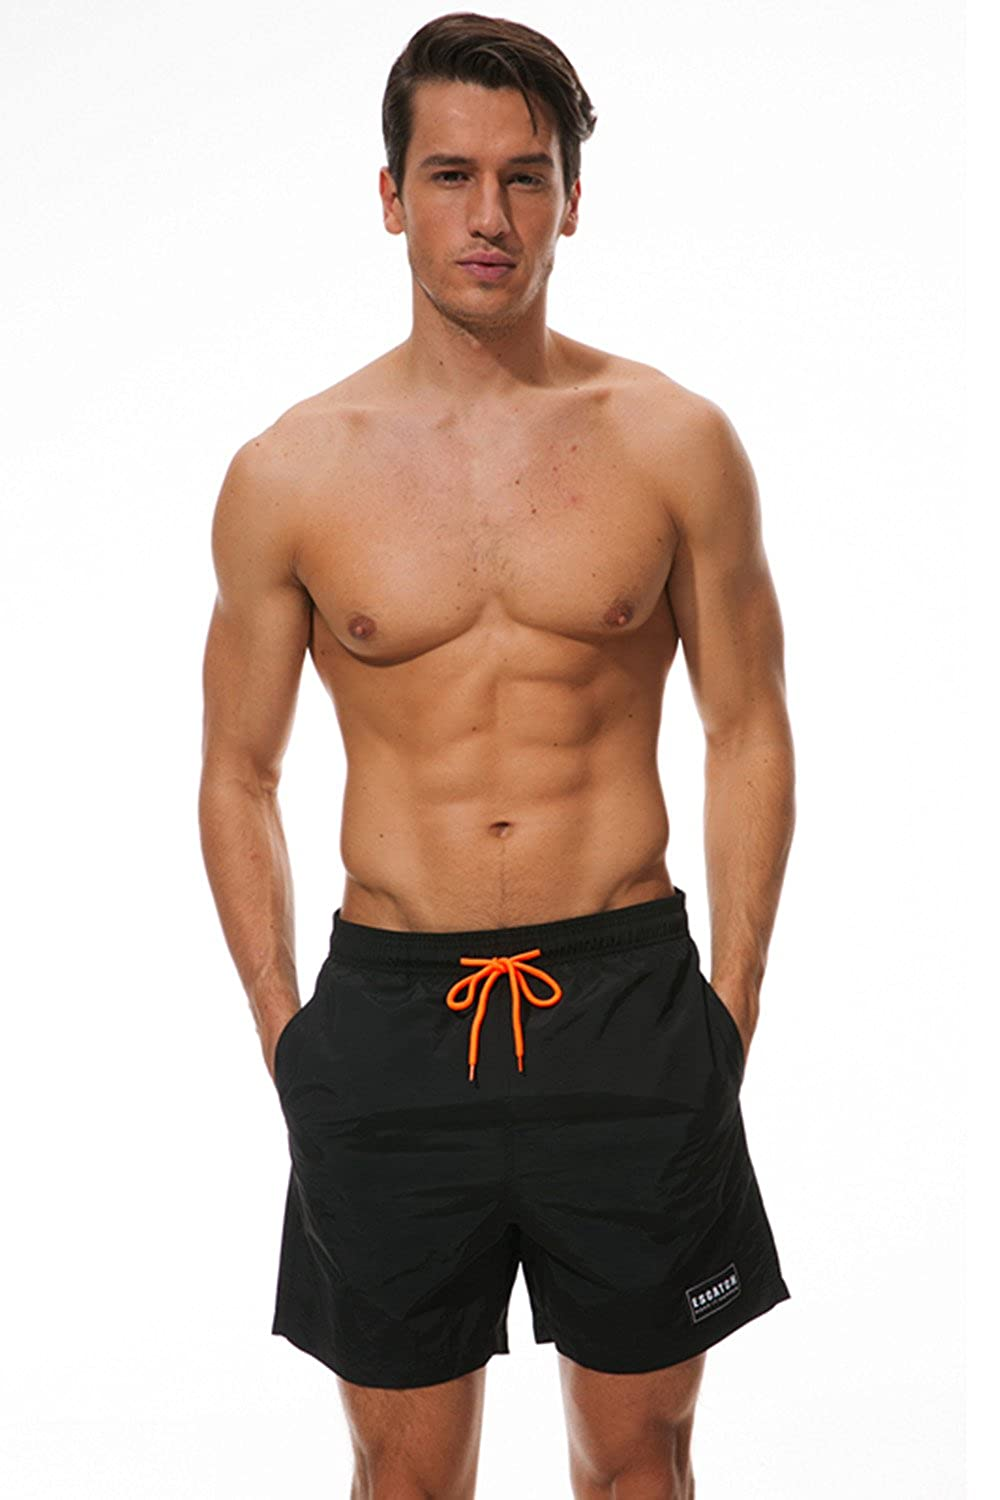 bd6118ddd2ae3 Mens Swim Trunks  This Bathing Suits For Men Get 6 Size  M L XL XXL 3XL Swim  Trunks For Men.Smooth surface